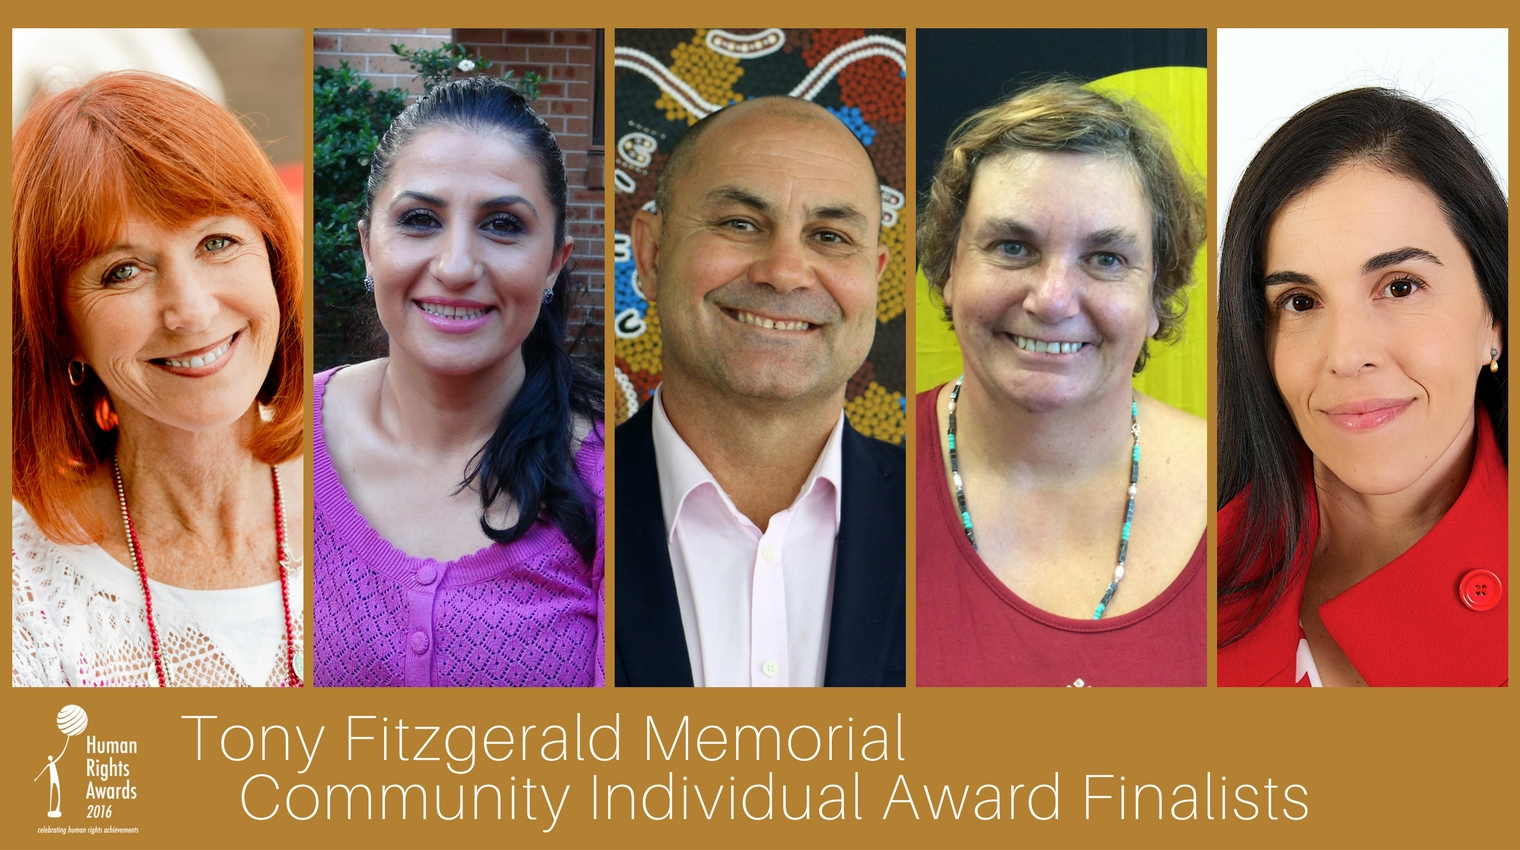 Composite of Tony Fitzgerald Memorial Community Individual Award finalists 2016